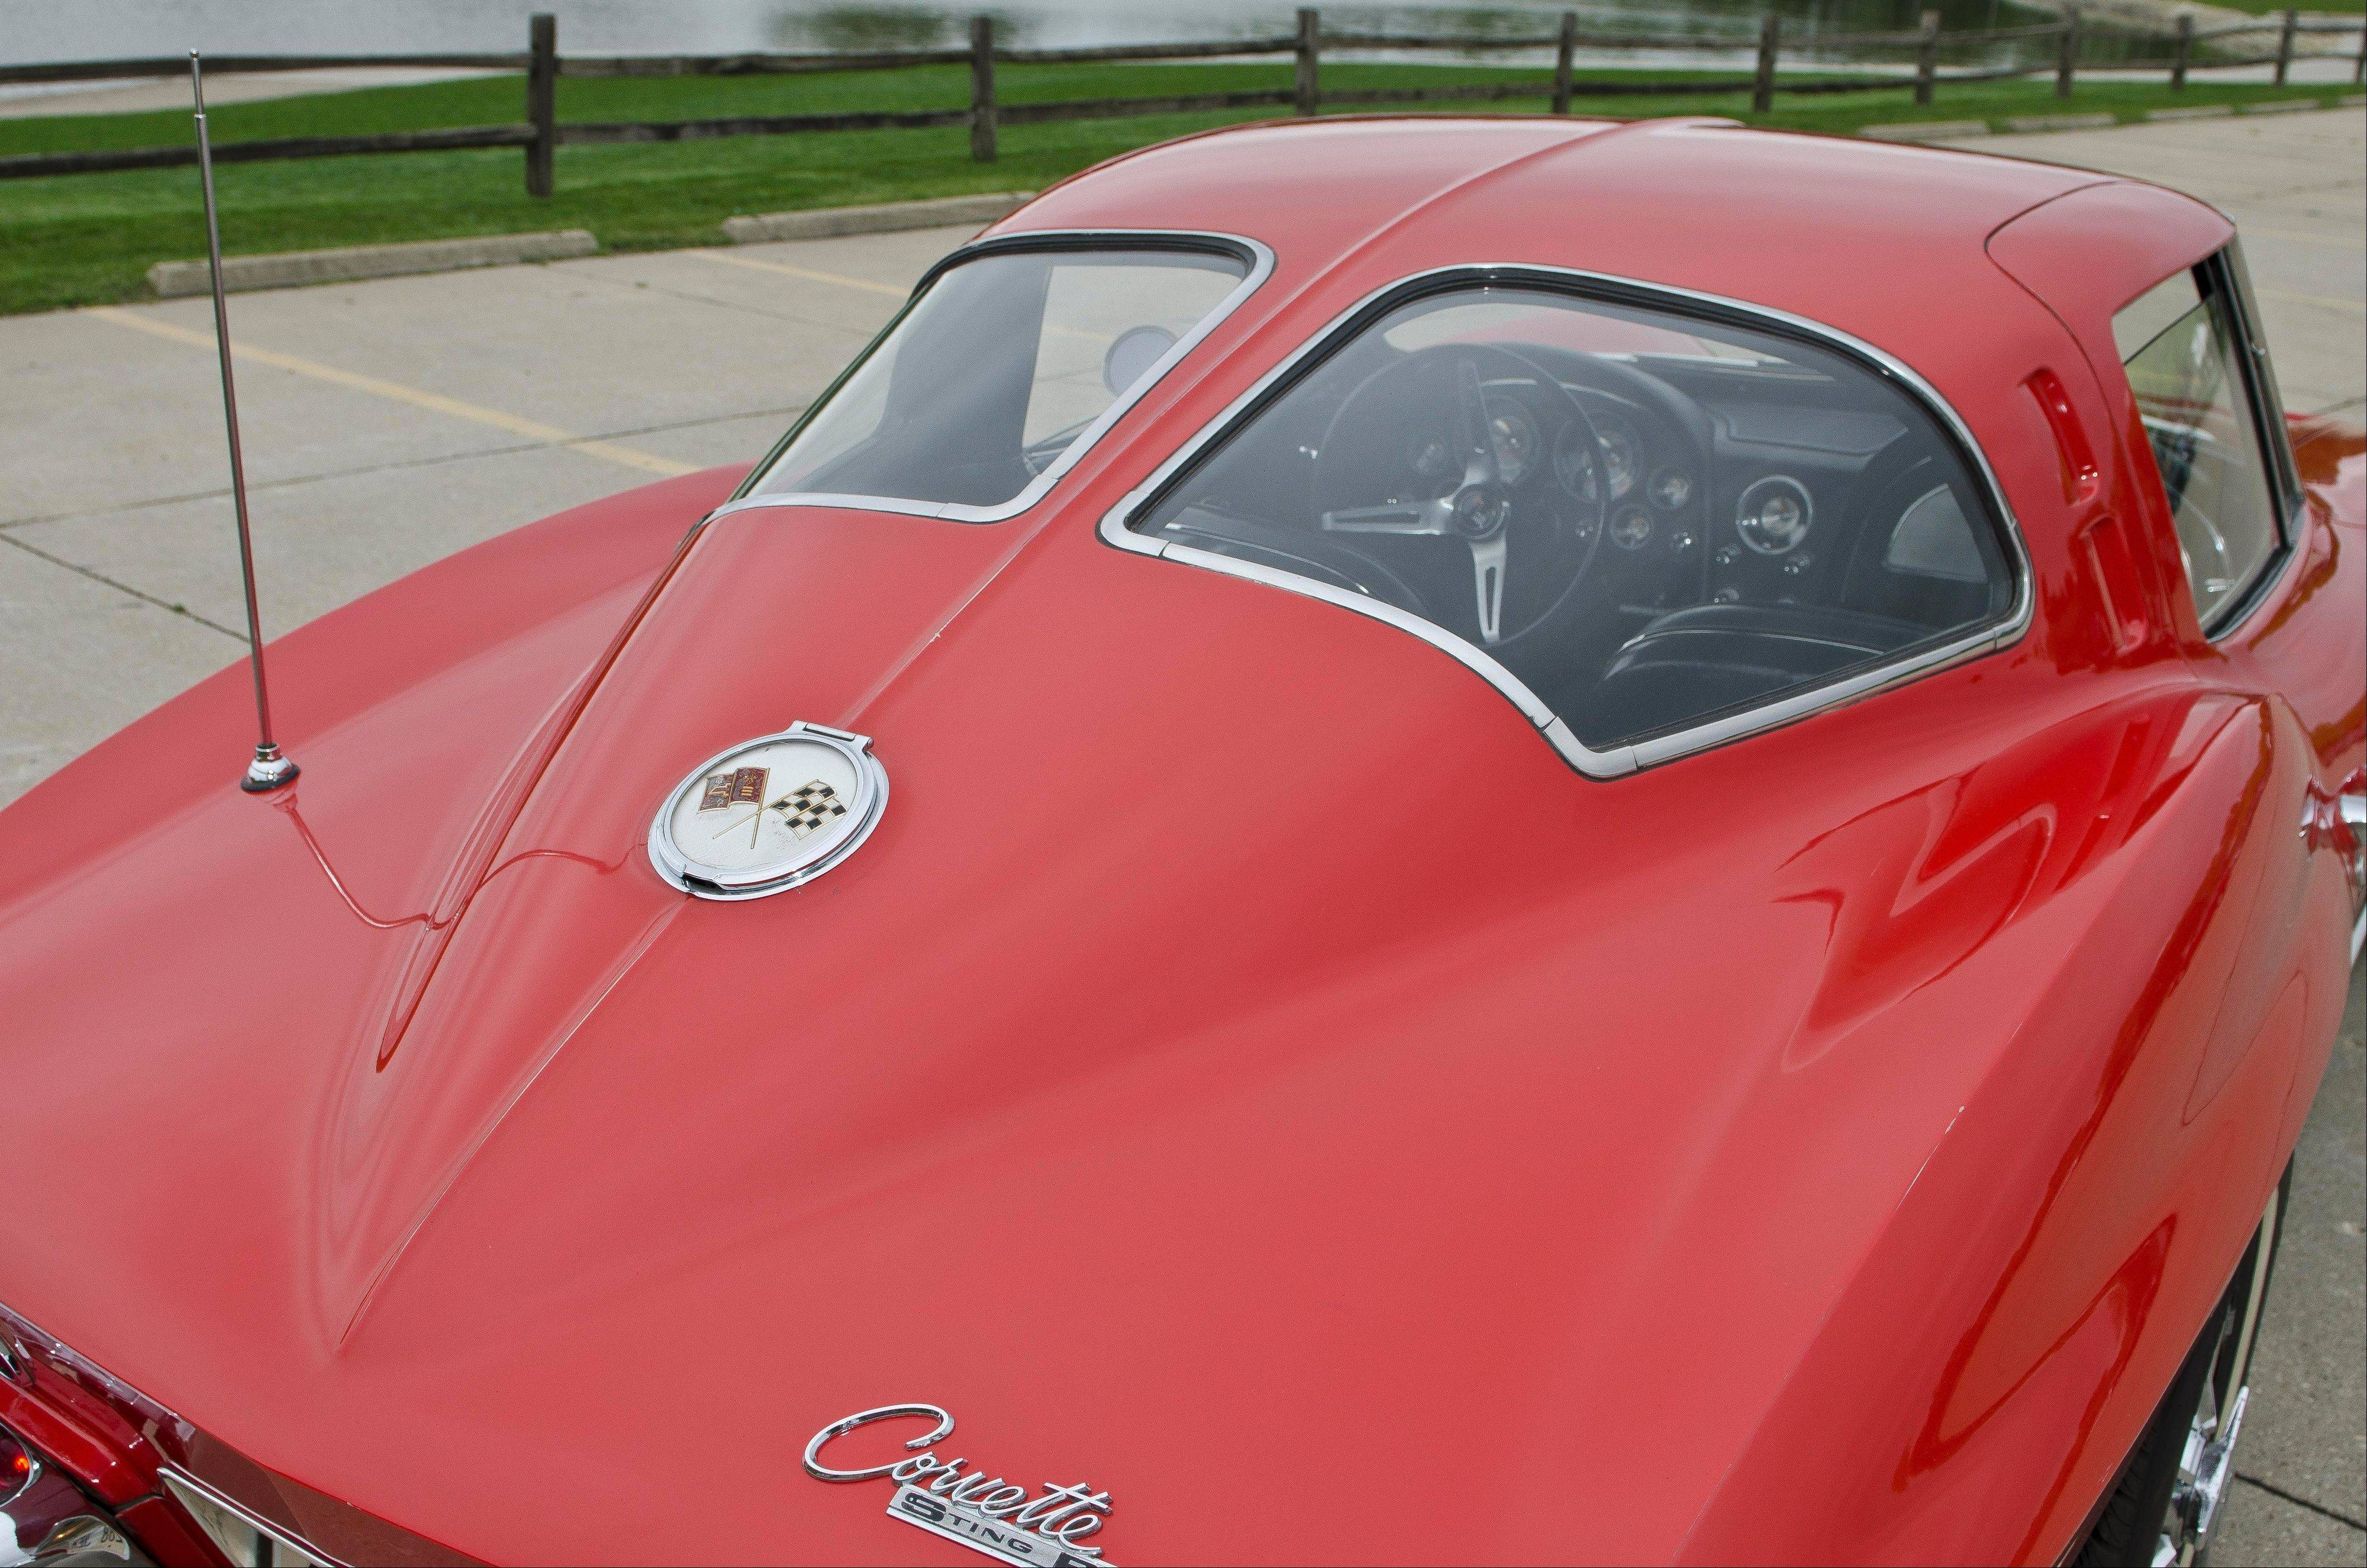 One of the things that make the 1963 Corvette so coveted is the split-window design of the rear windshield.